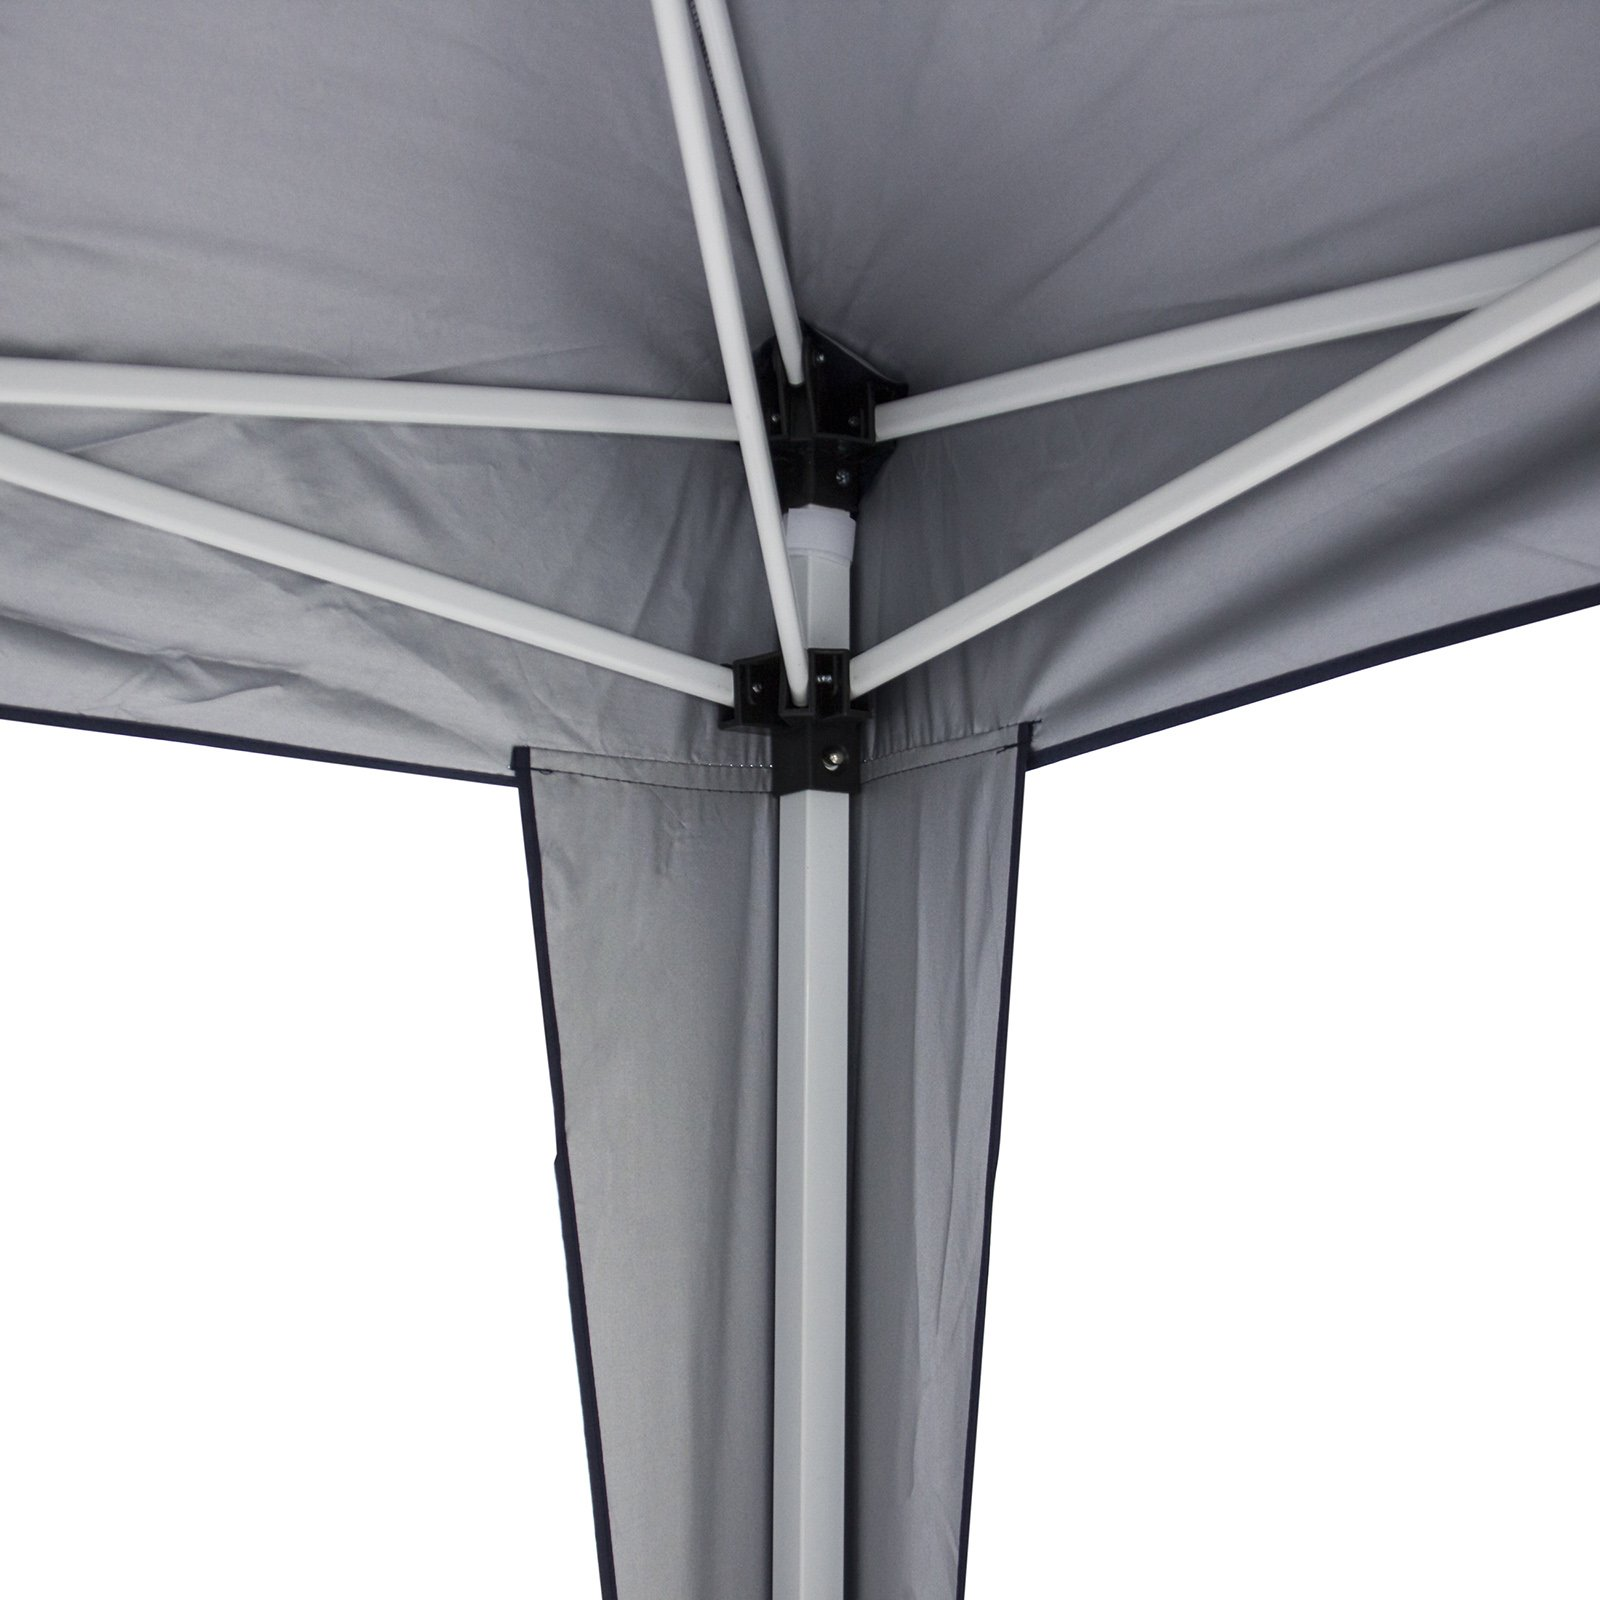 Best Choice Products 10x10ft Portable Lightweight Pop up Canopy Tent w/Side Walls Carrying Bag - Blue/Silver by Best Choice Products (Image #2)